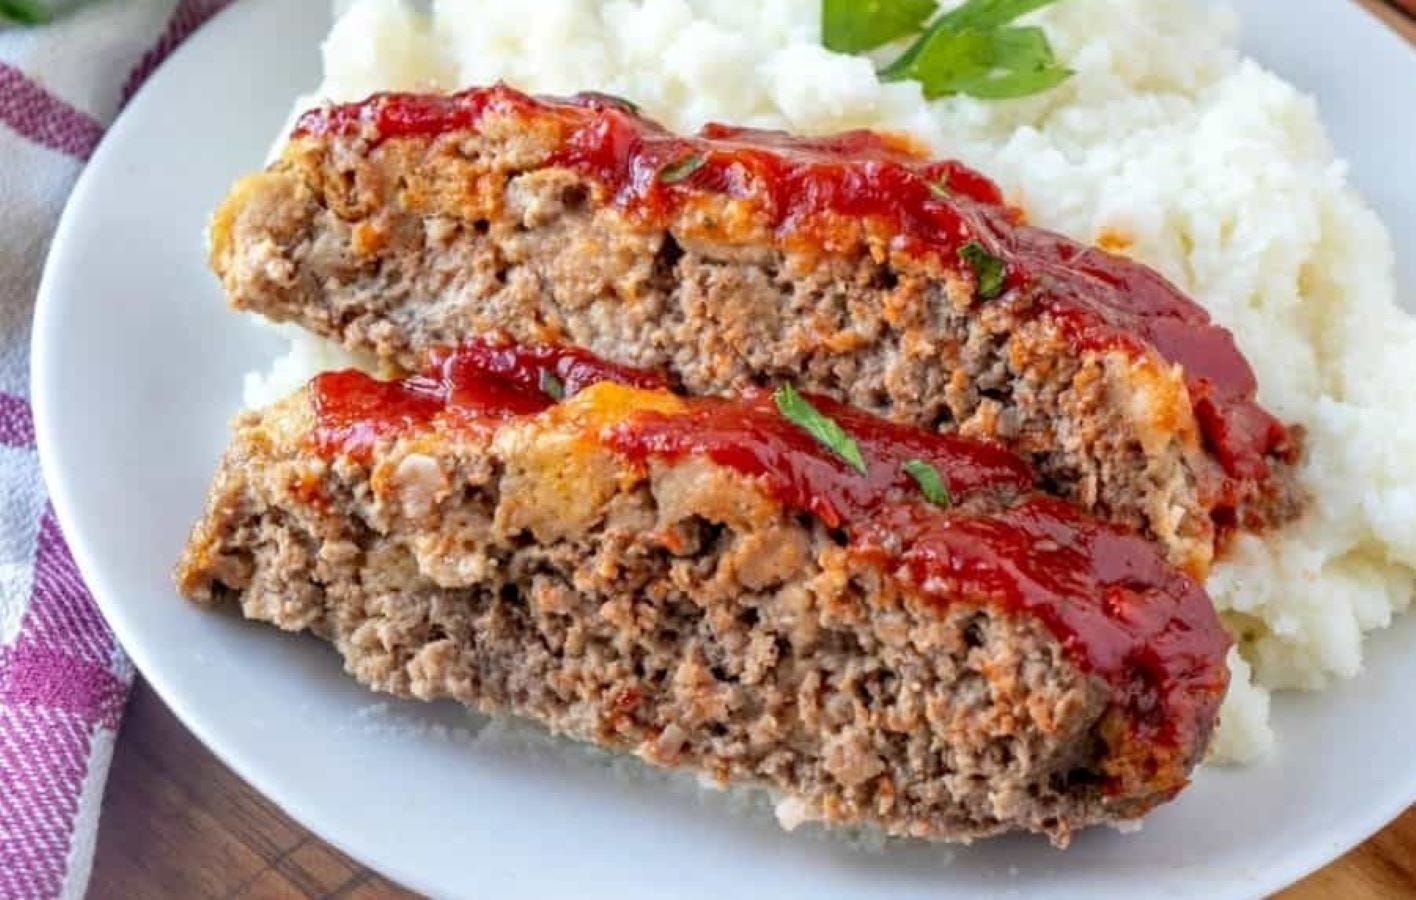 Two slices of meatloaf on a plate with mashed potatoes.